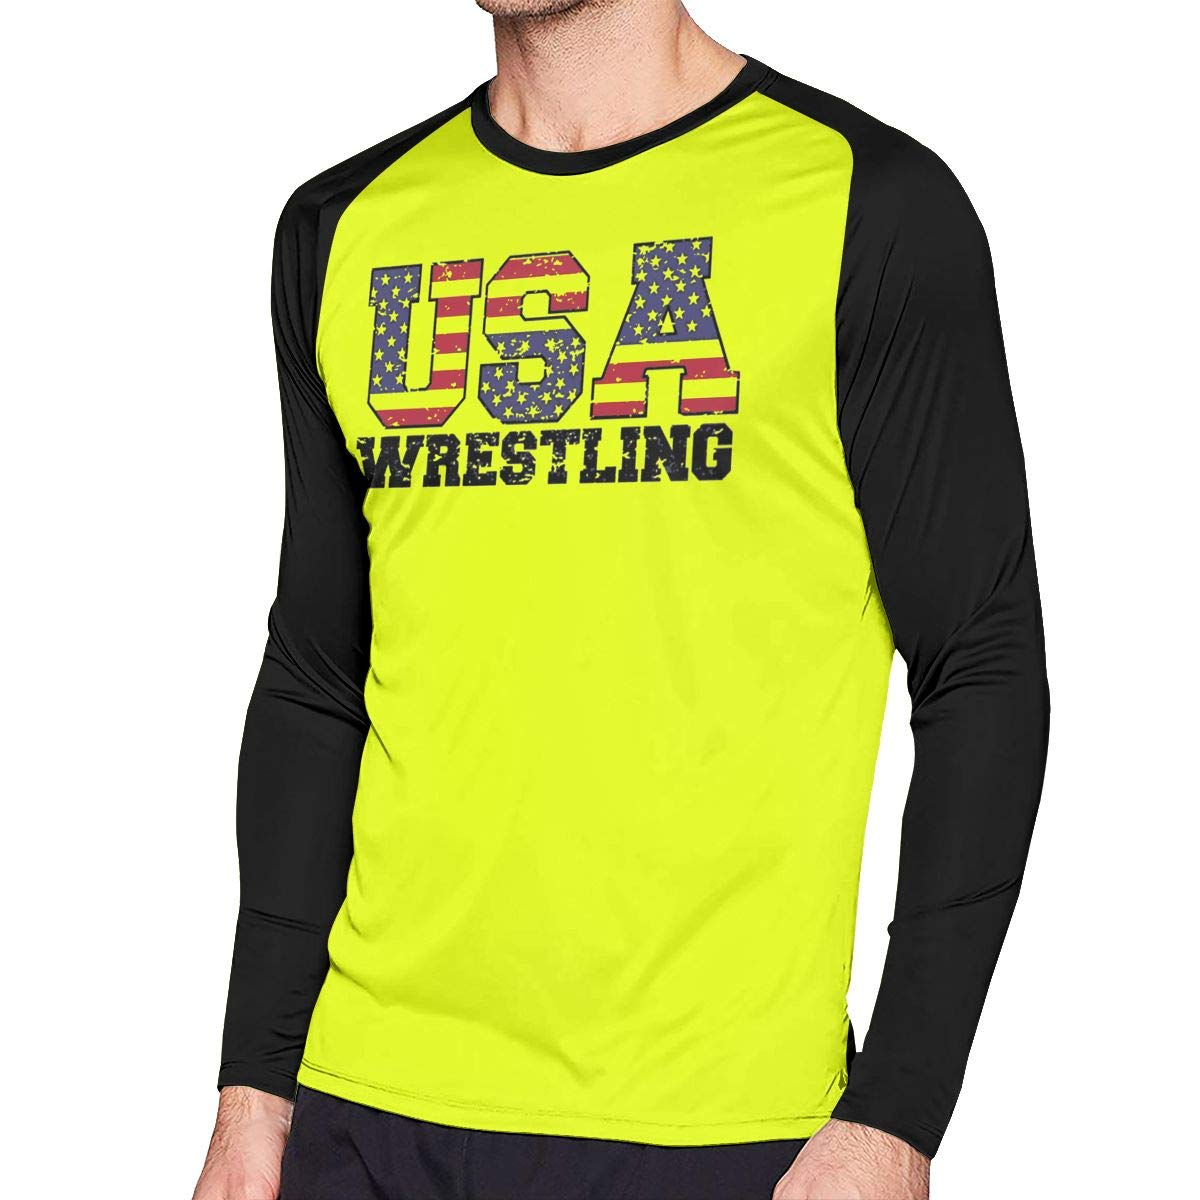 8471e23c5 Usa Wrestling Long Sleeve Shirts - DREAMWORKS